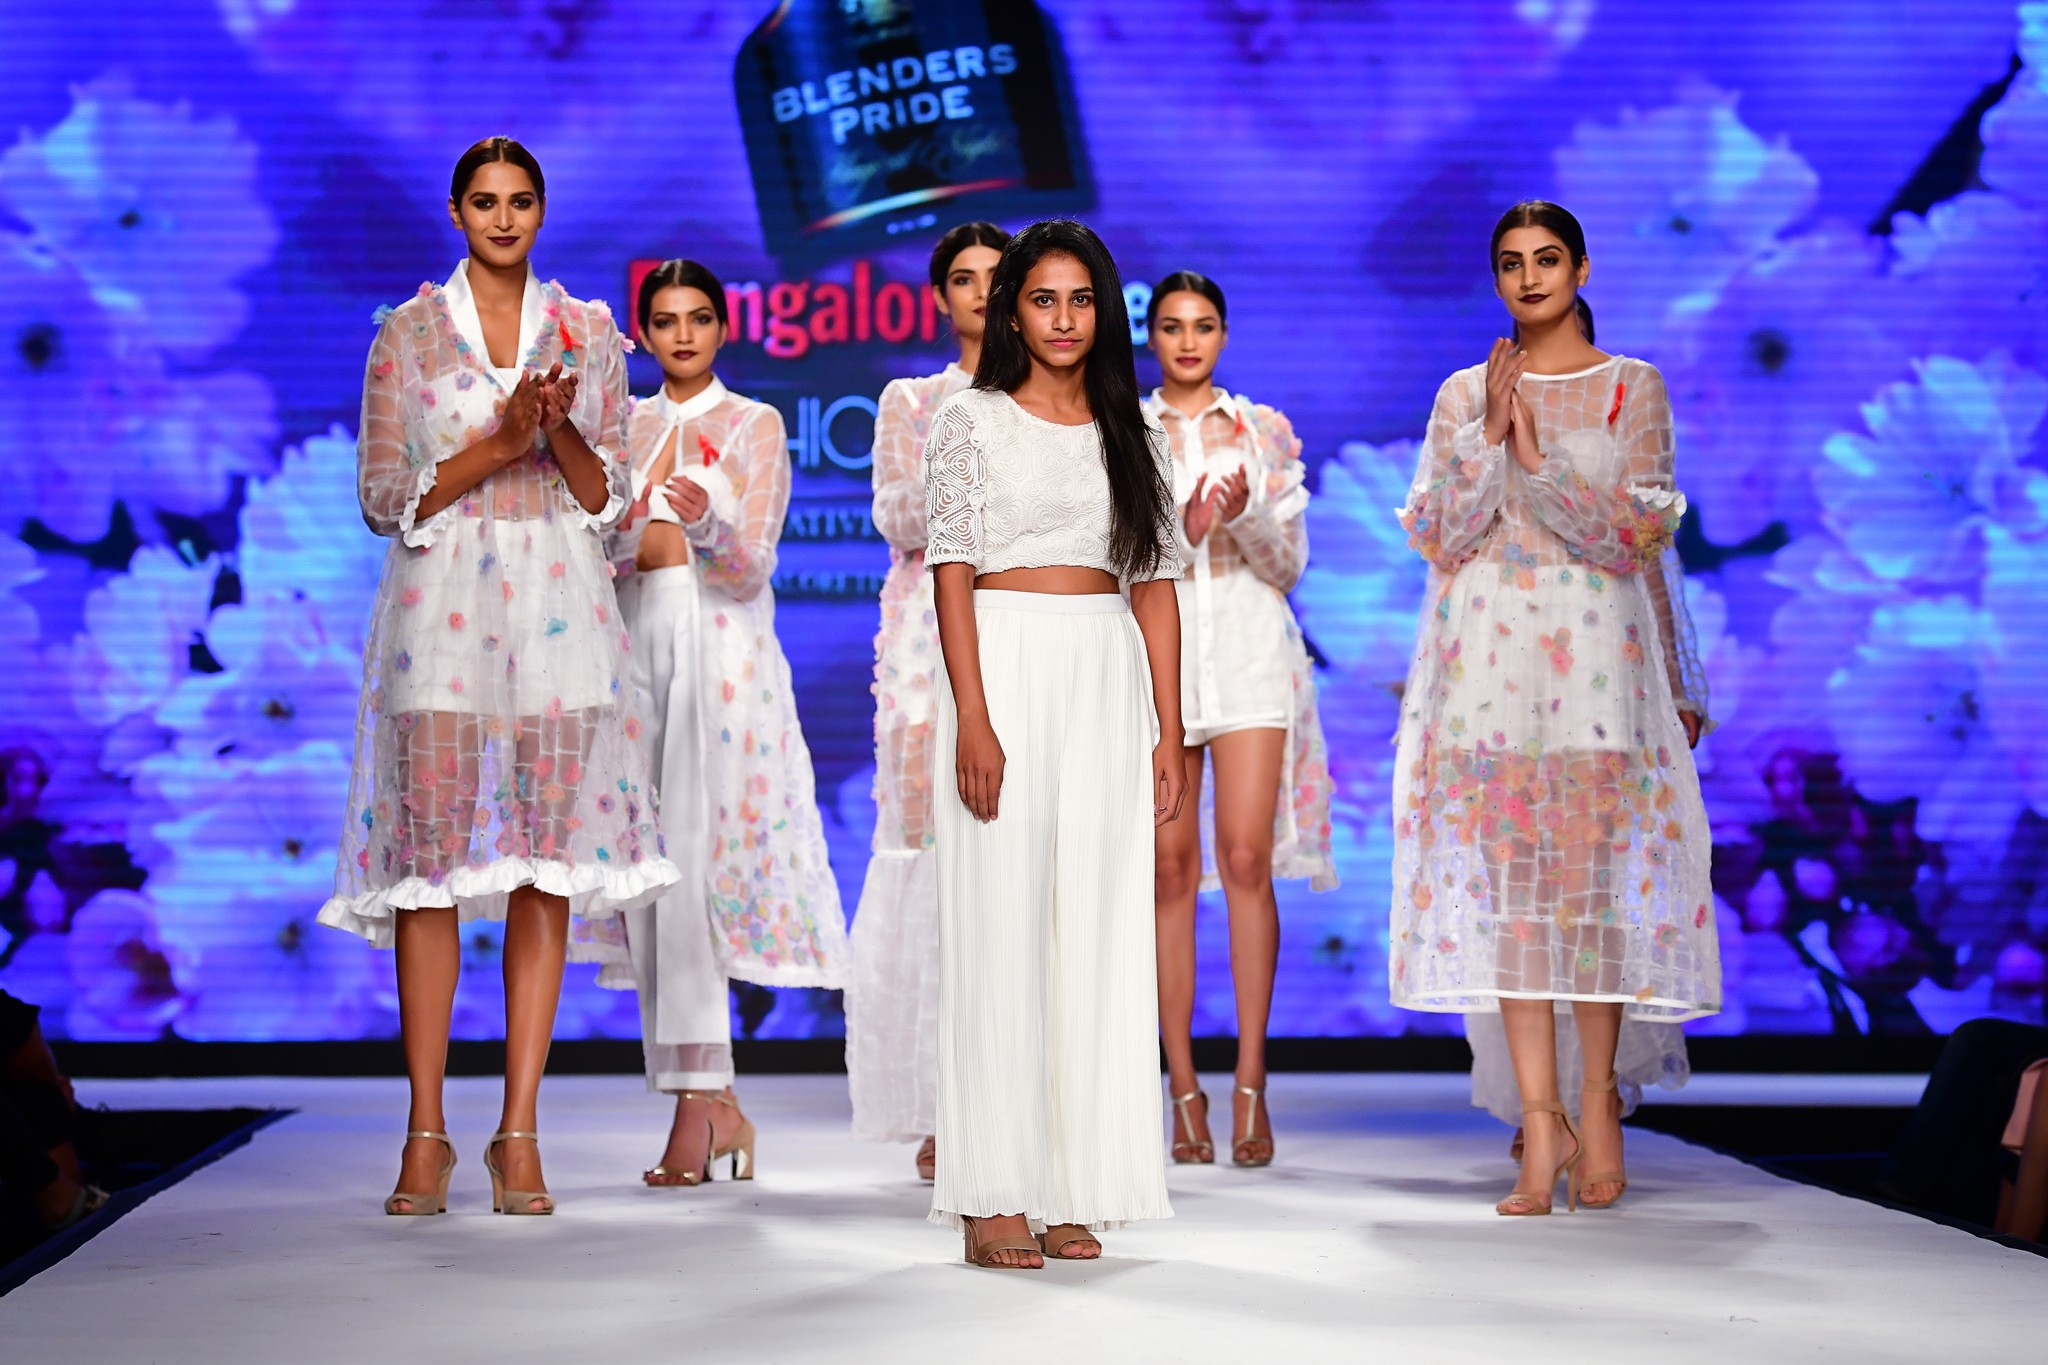 bangalore times fashion week - BTFW Collection5 7 - Jediiians at Bangalore Times Fashion Week 2018